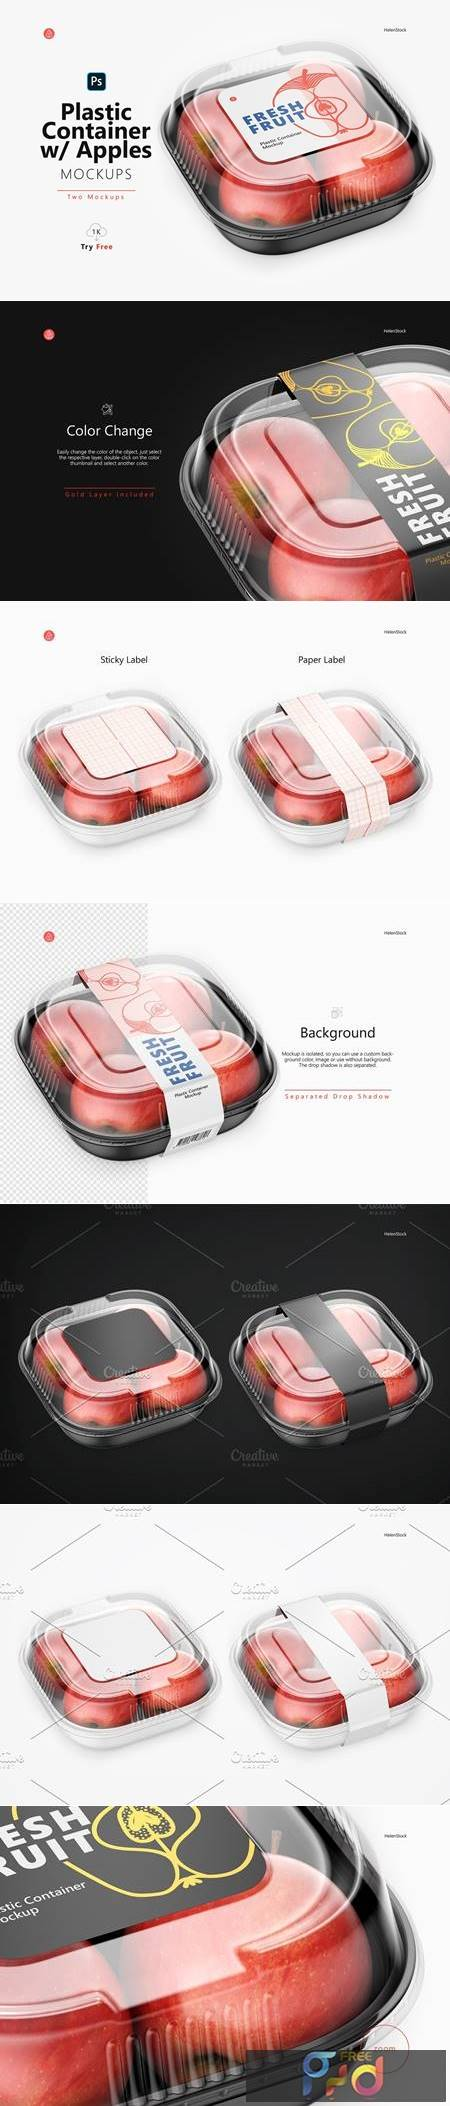 Plastic Container with Apples Mockup 5395363 1